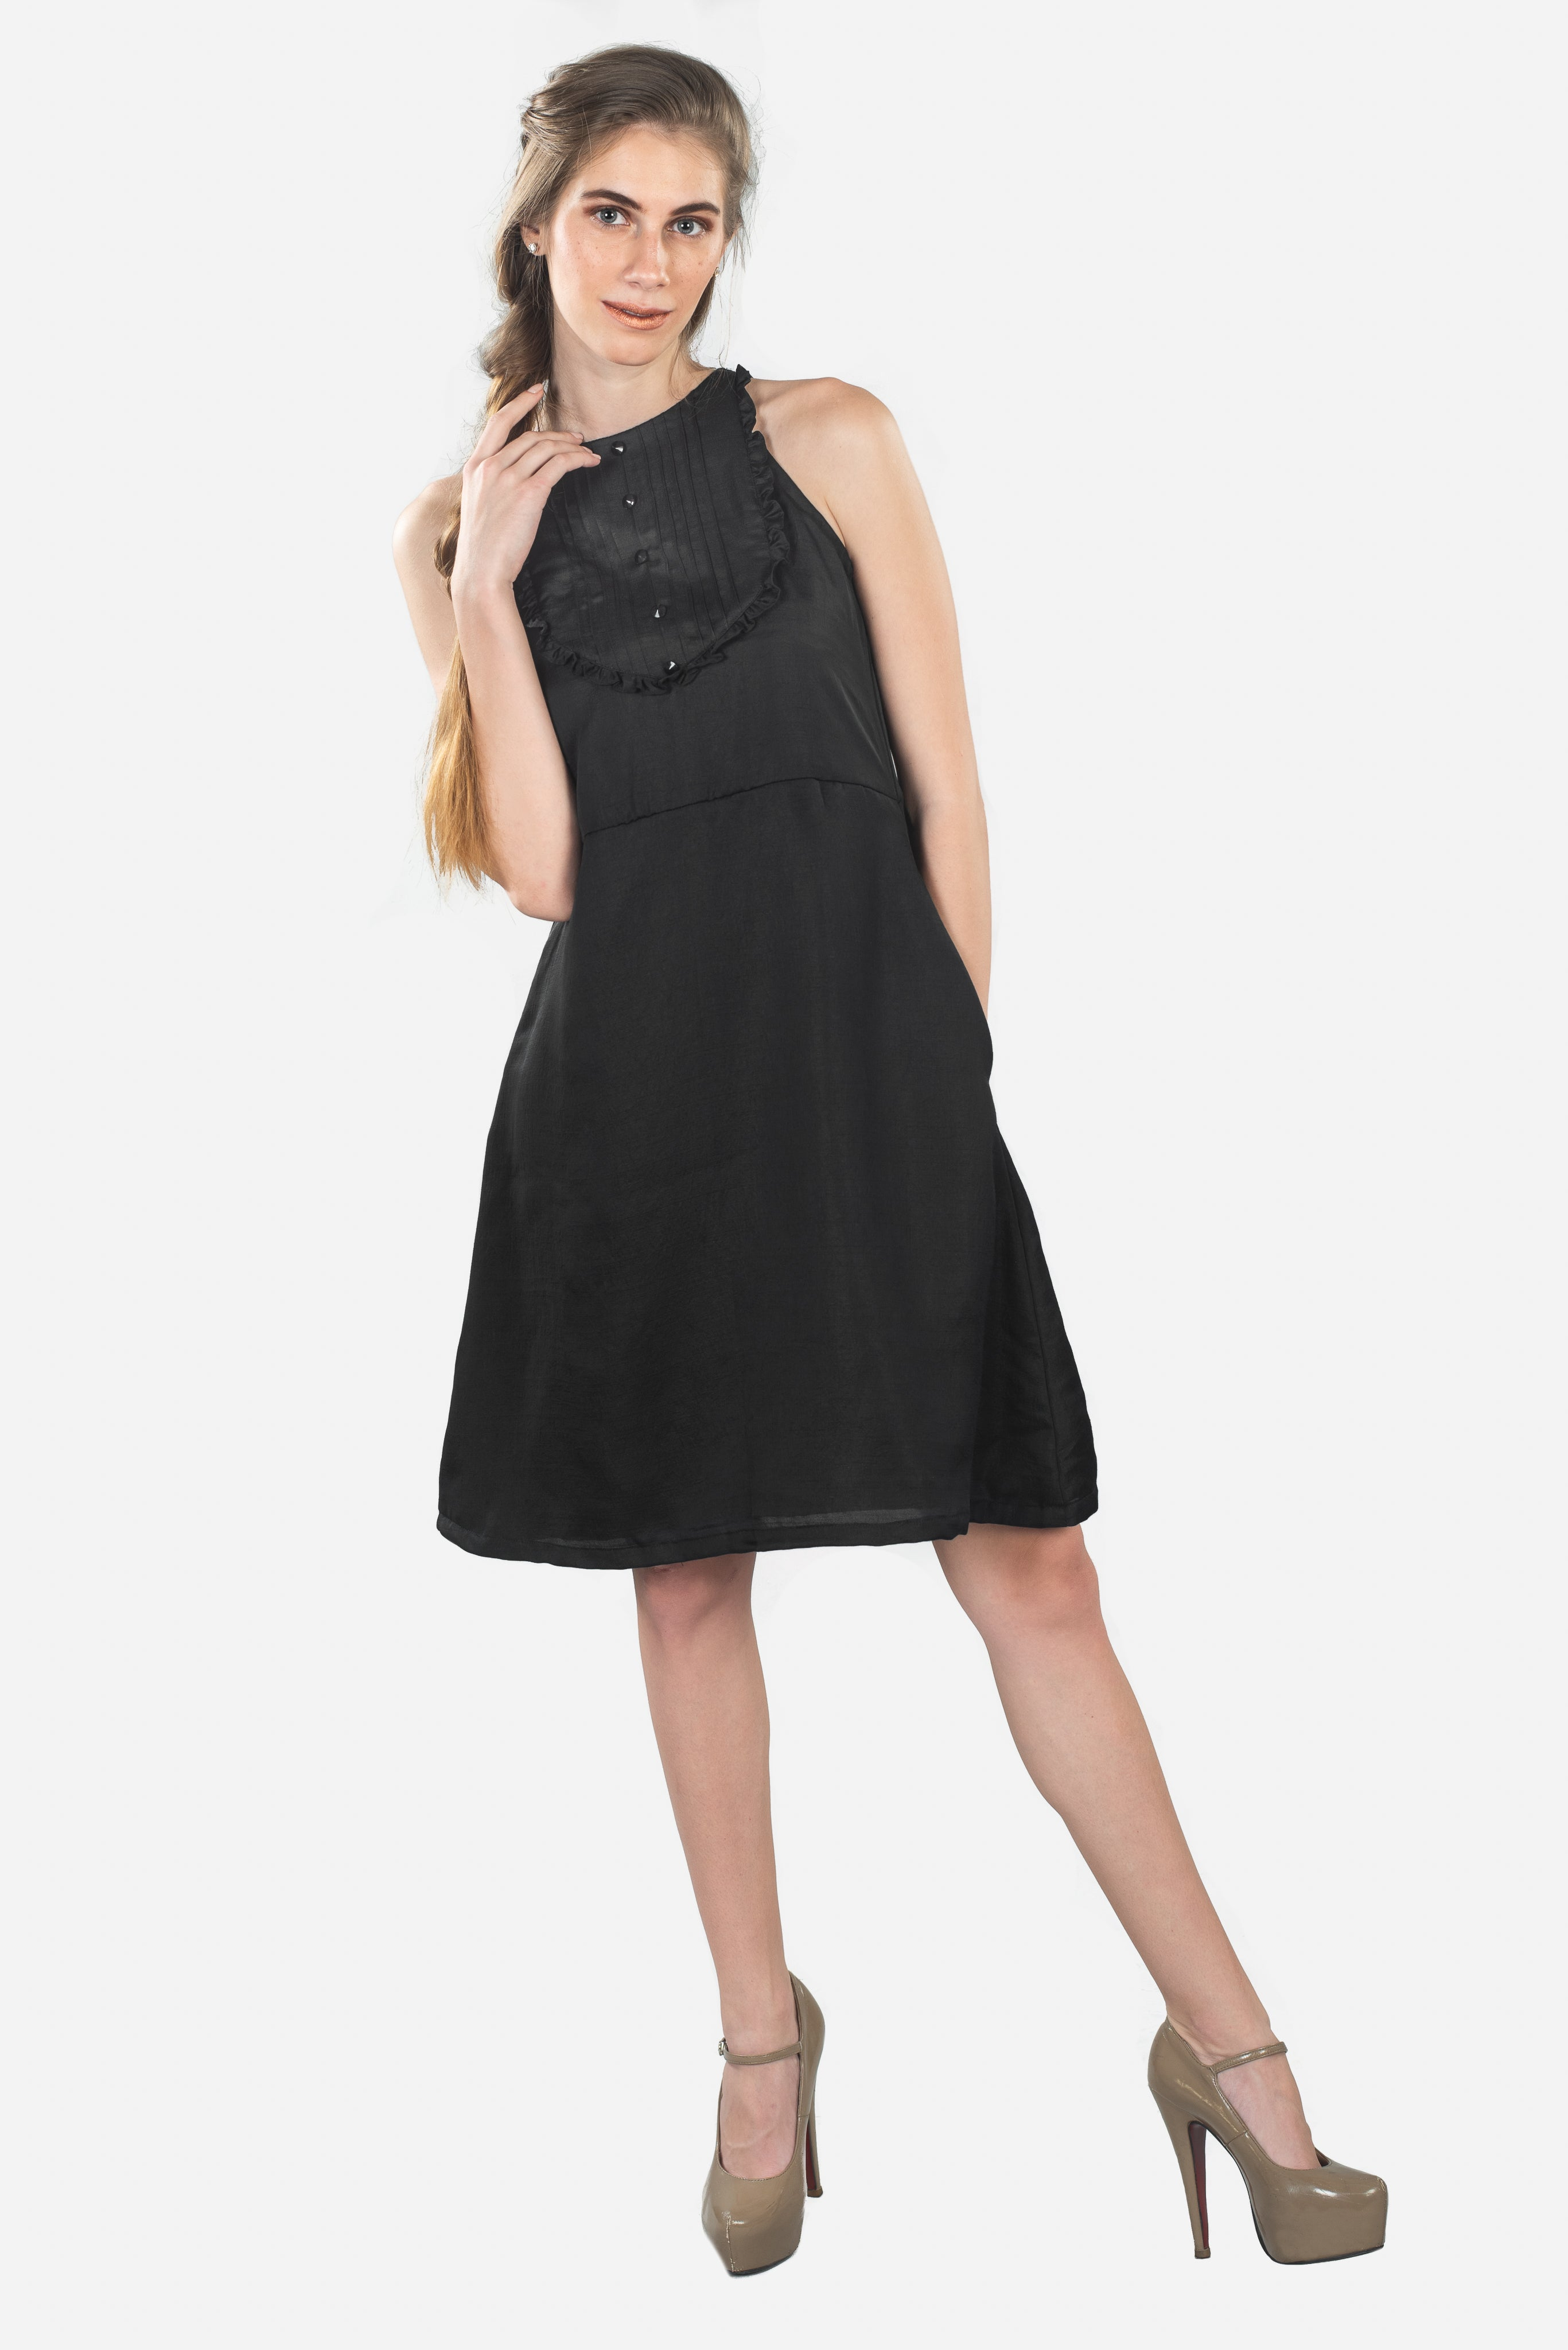 Women's black dress with pockets, formal evening wear, sexy dress, evening dress, party outfit, party dress, elegant #dresseswithpockets #blackdresseswithpockets #blackdress #dresses #dressesforwomen #beautifulblackdress #prettyblackdress #perfectlittleblackdress #womensblackdress #blackdressforwomen #eveningwear #sexydress #partydressesforwomen #elegantdress #specialoccasiondress  #sexyblackdresses  #blackcocktaildress #eveningdressformal